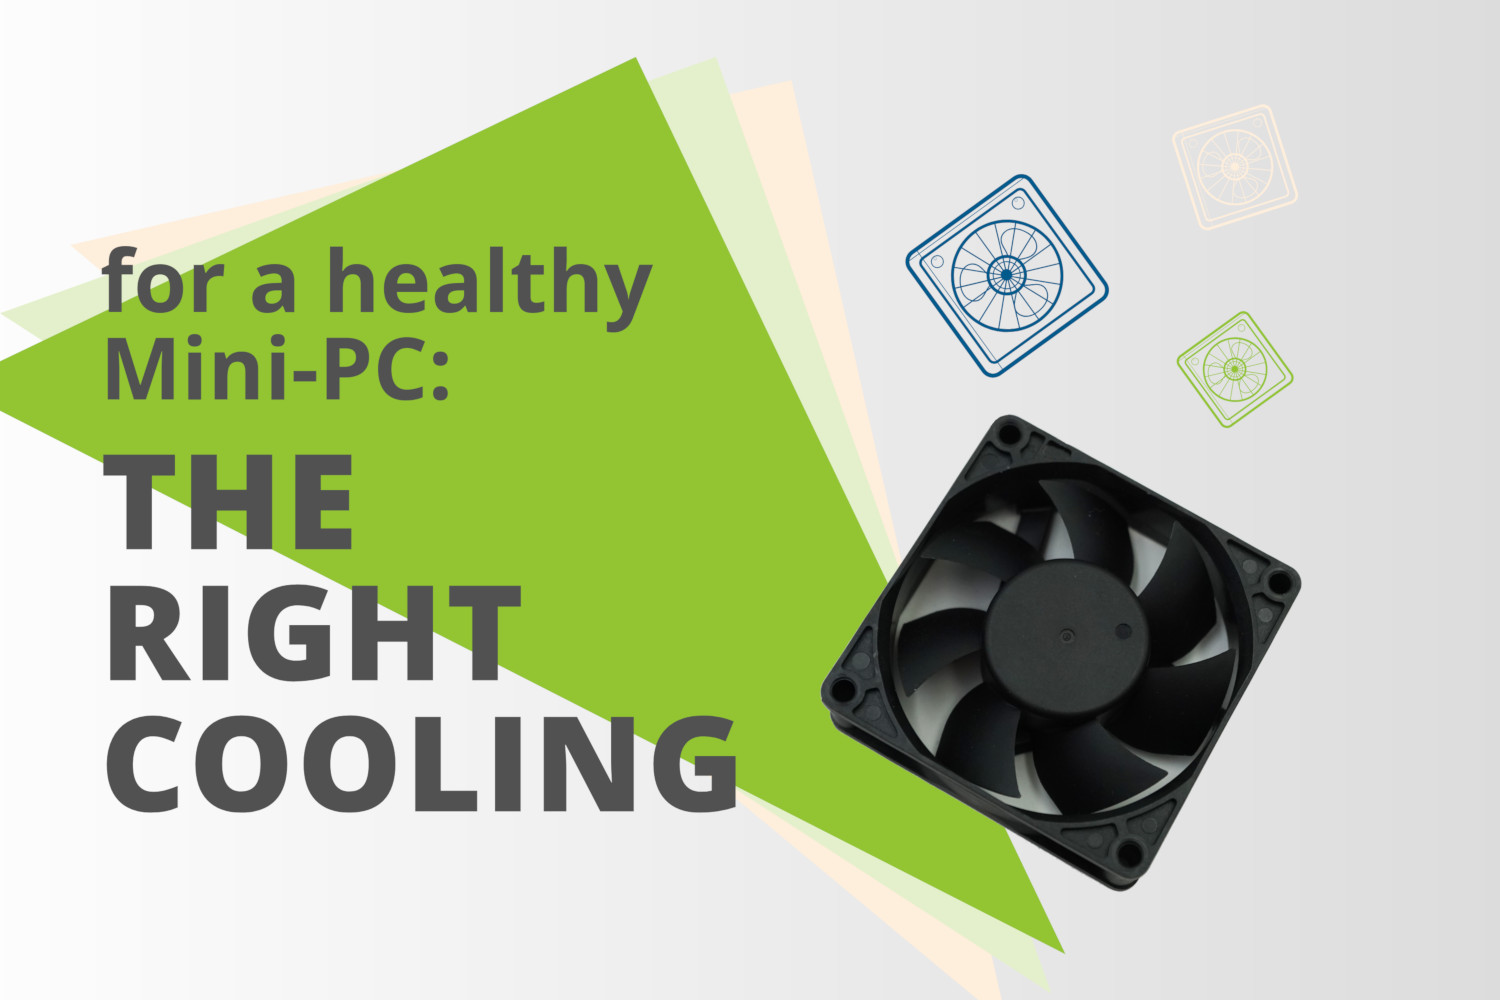 How can a Mini-PC stay healthy? Part 1: The correct cooling